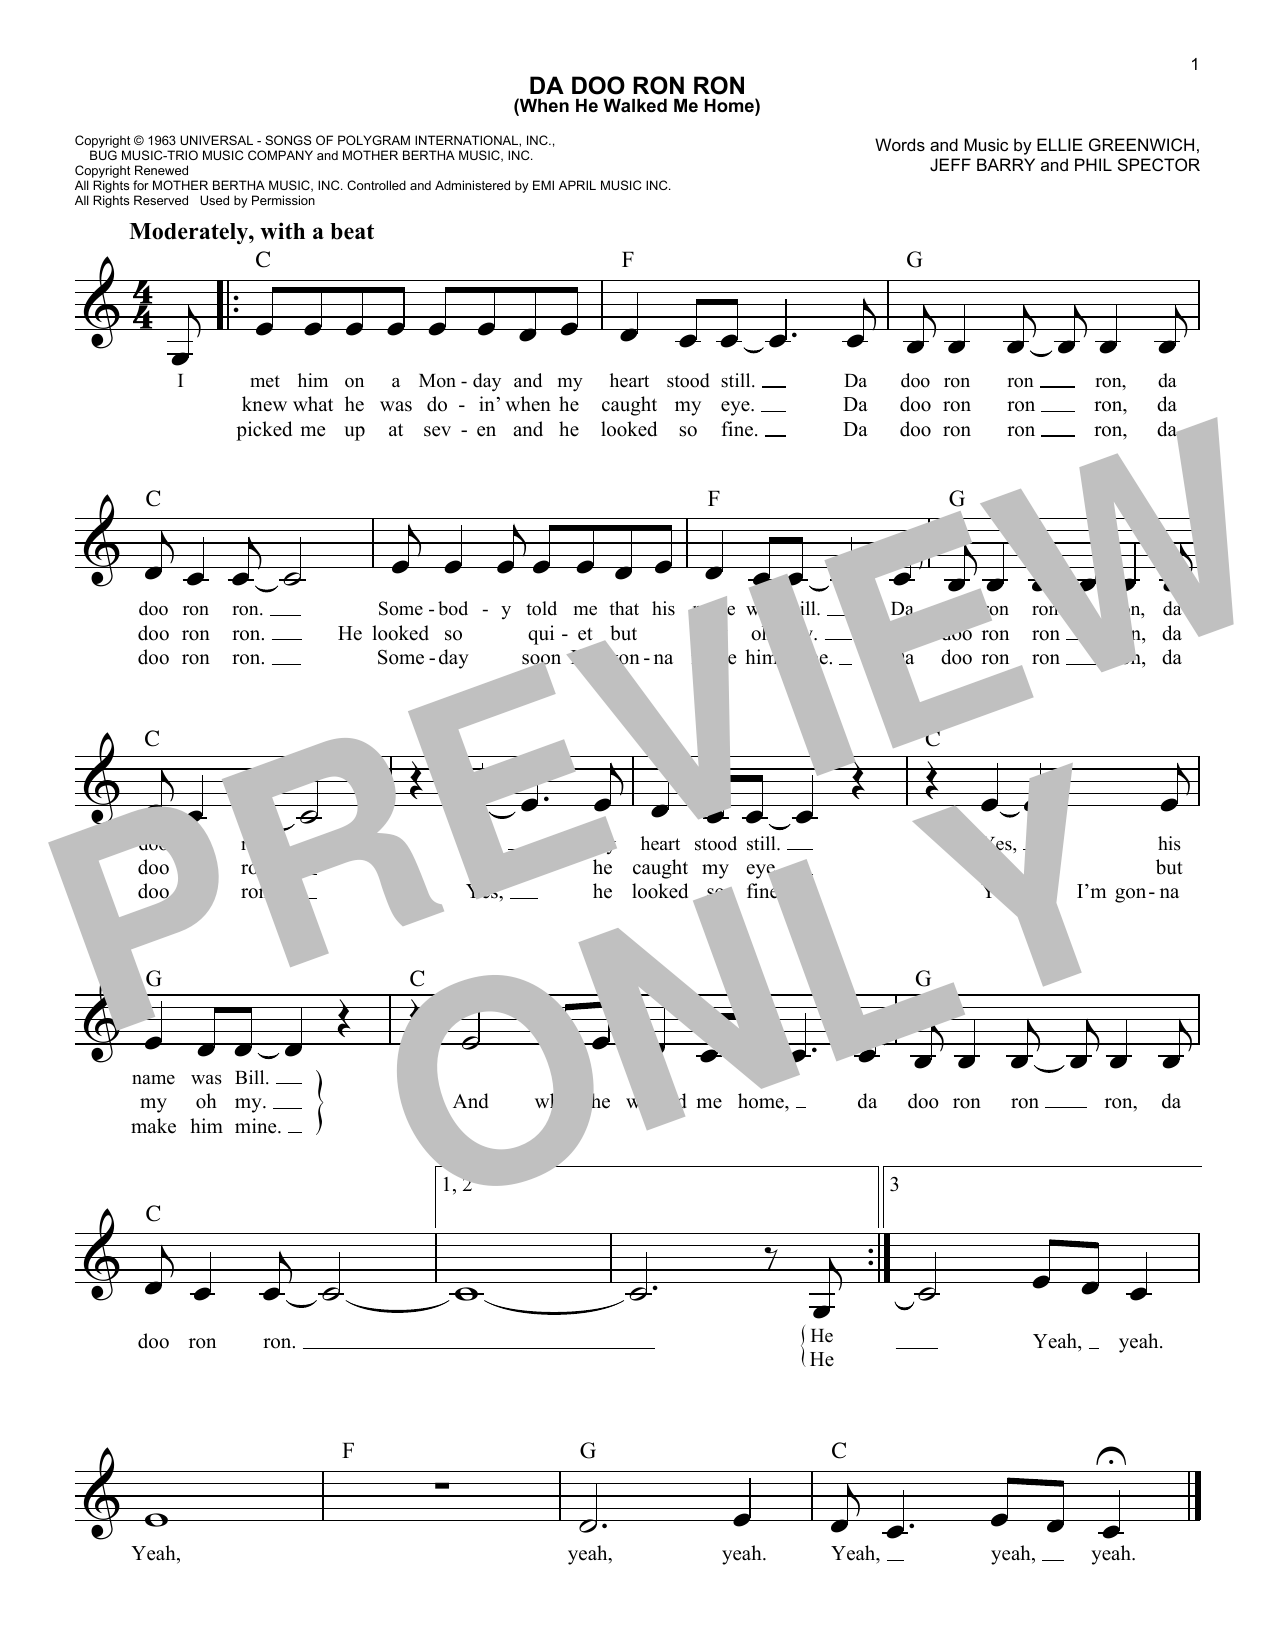 Da Doo Ron Ron (When He Walked Me Home) Sheet Music